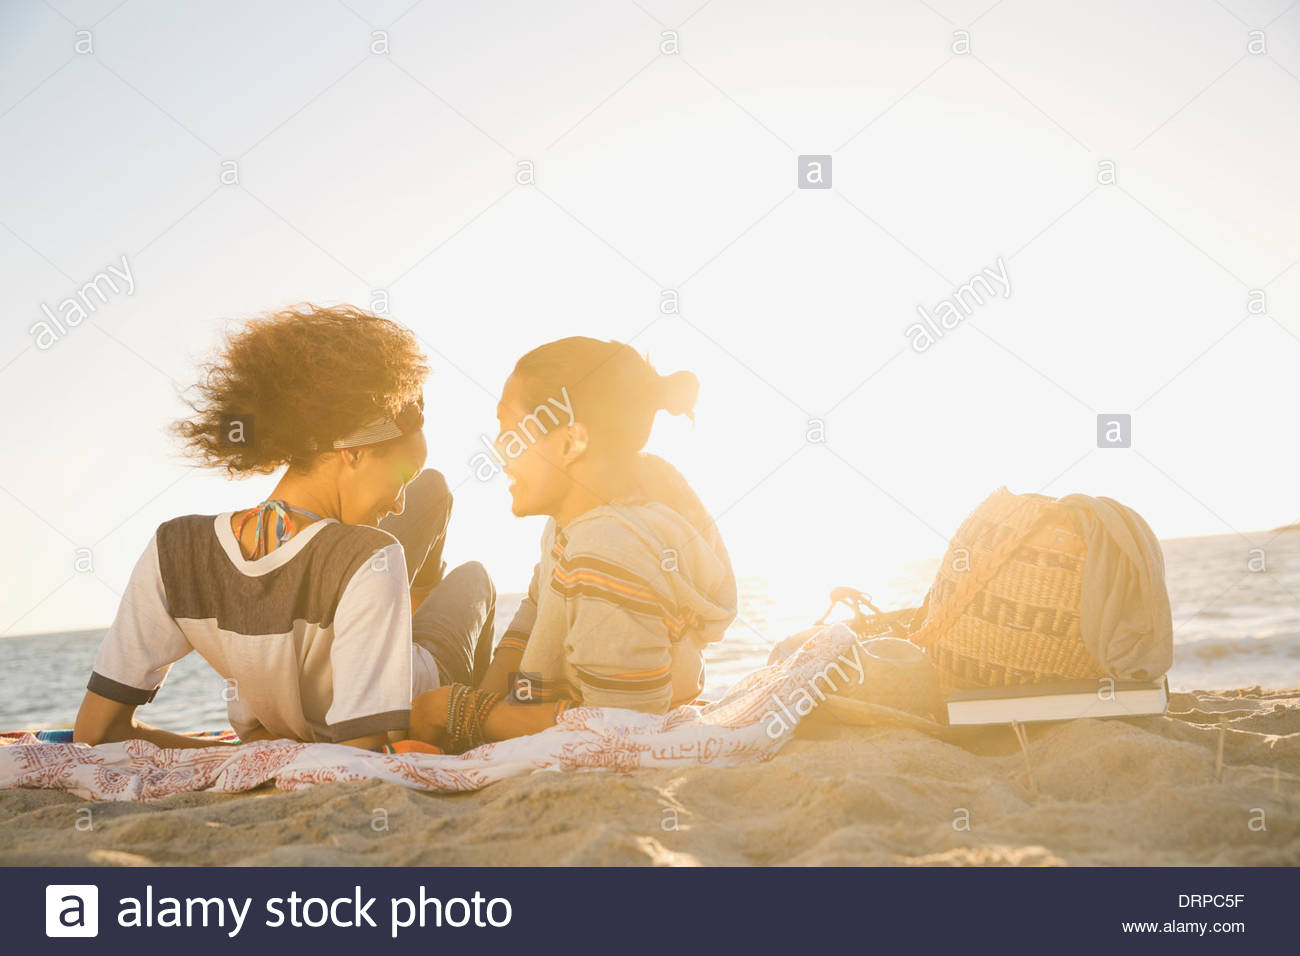 Couple spending leisure time at beach - Stock Image